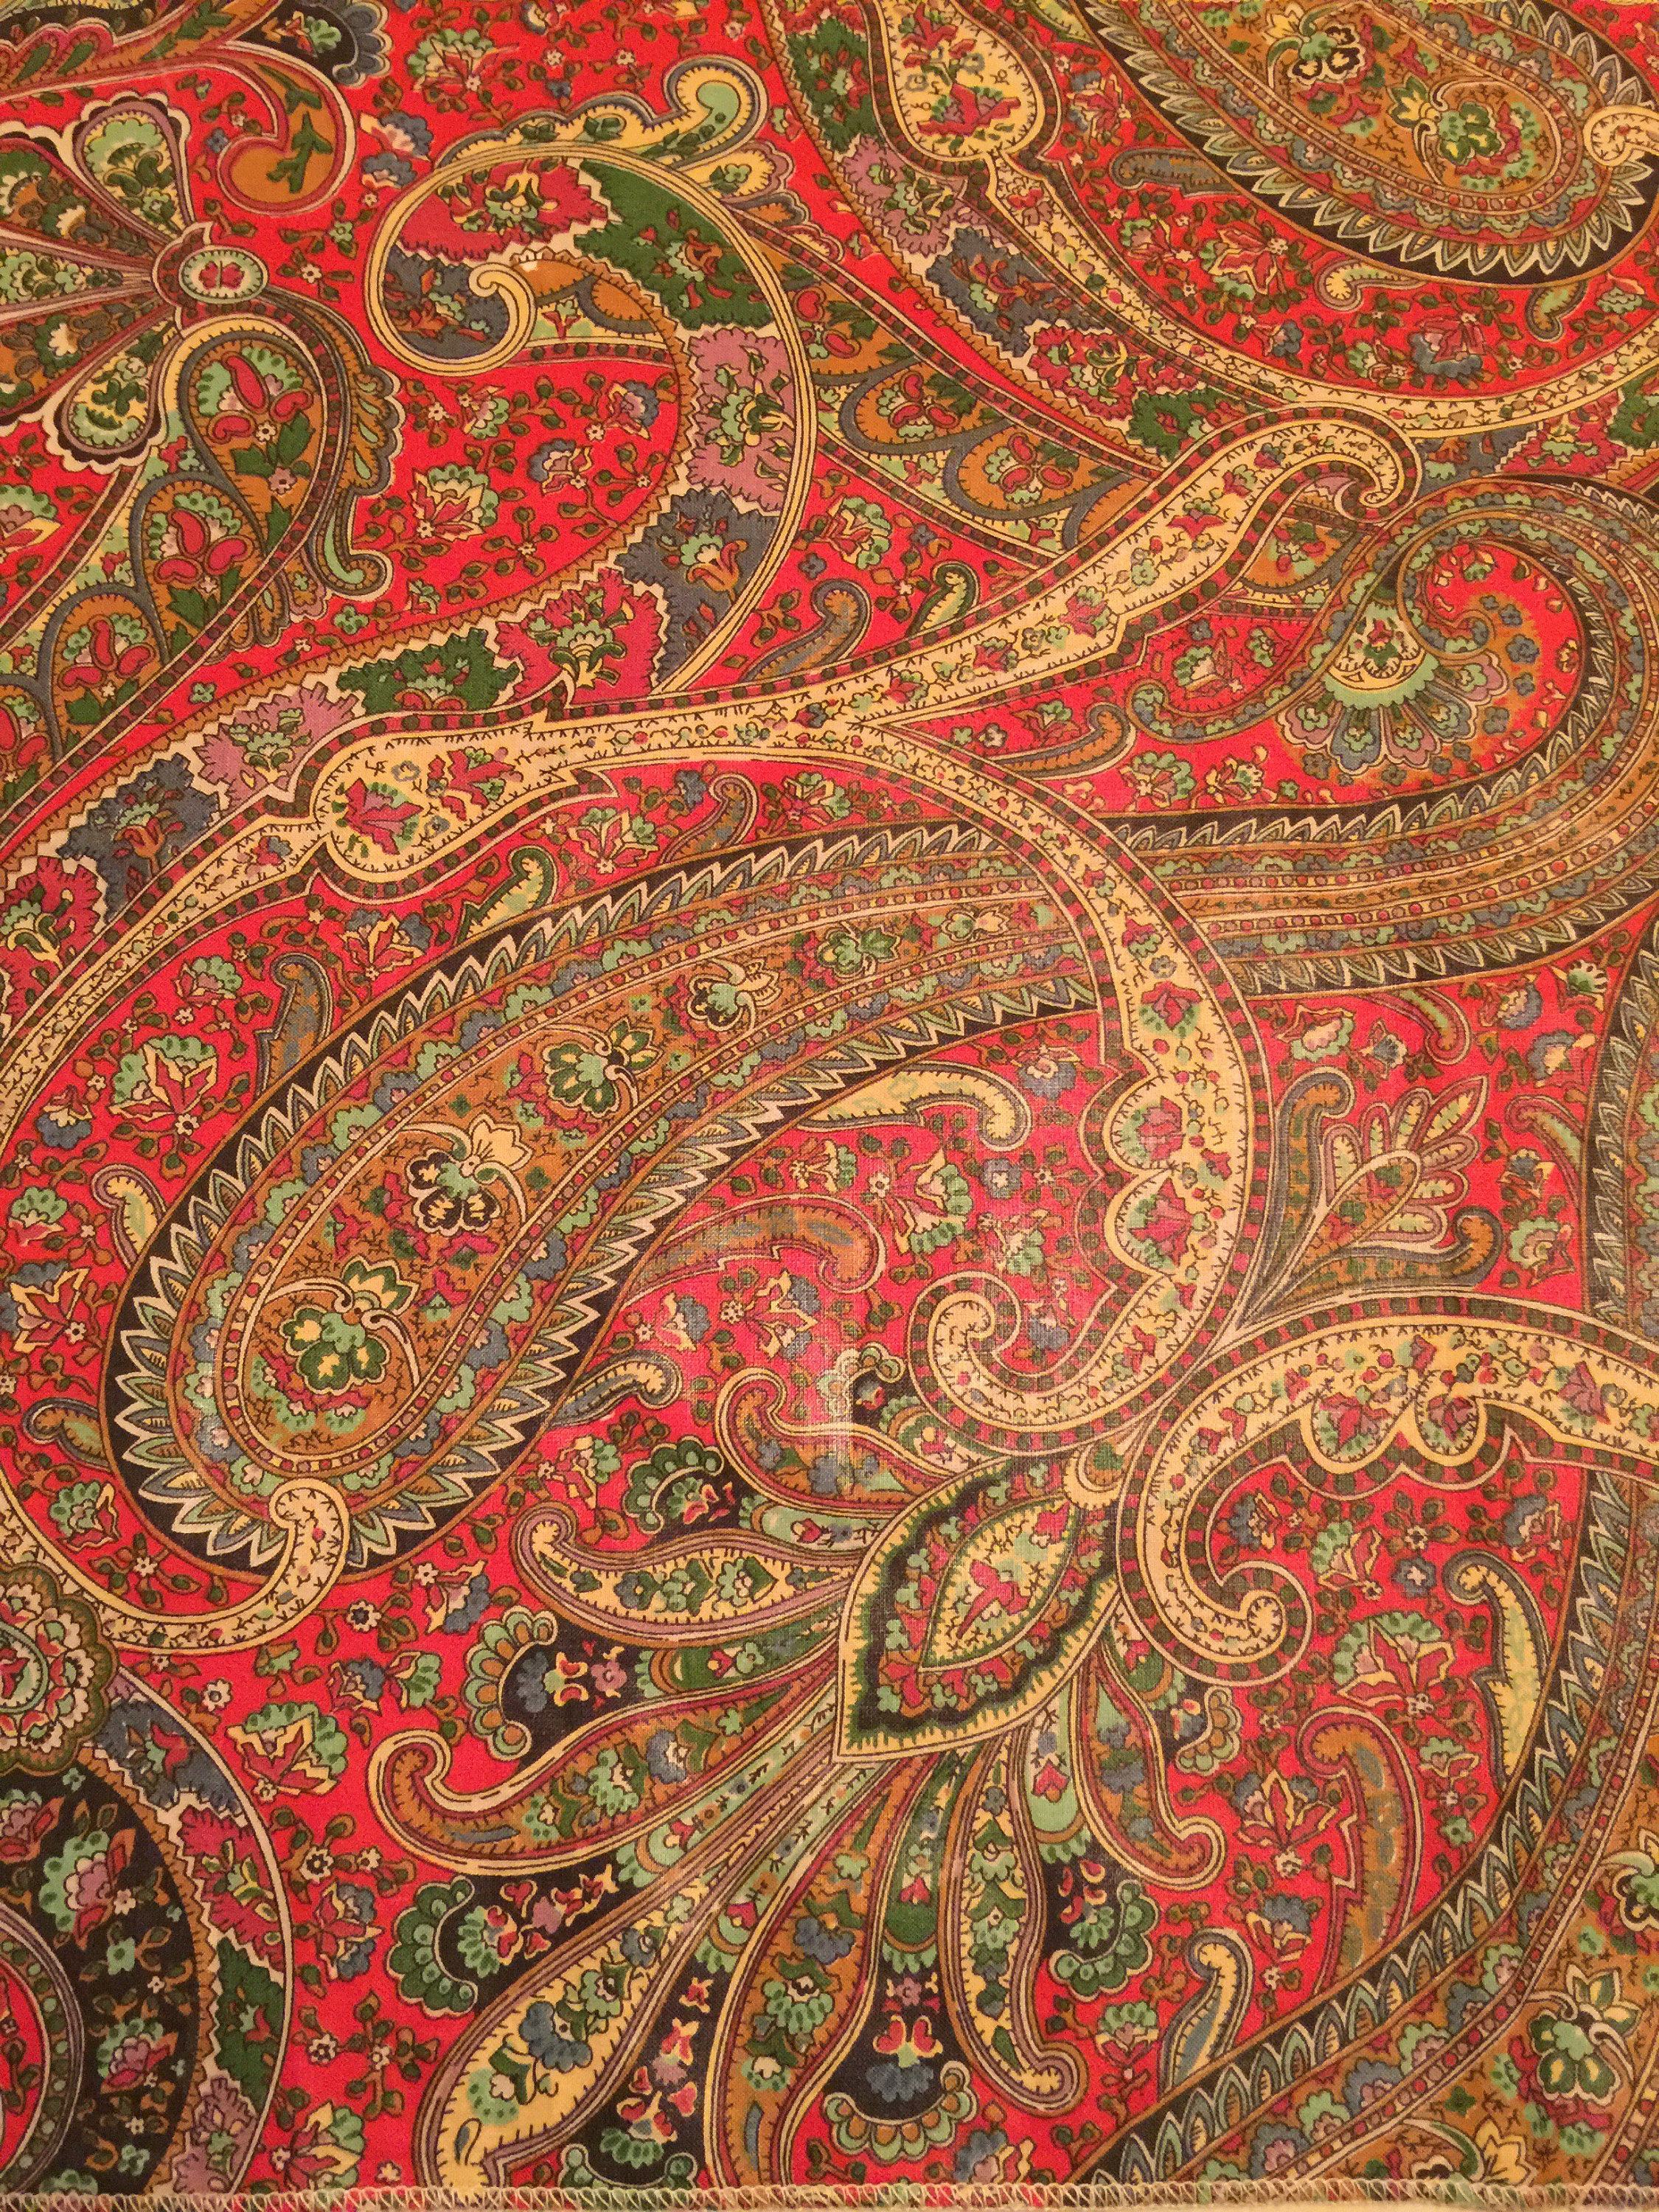 Ideal Clarence House Fabric. Paisley Upholstery Fabric. Designer Fabric  YL17